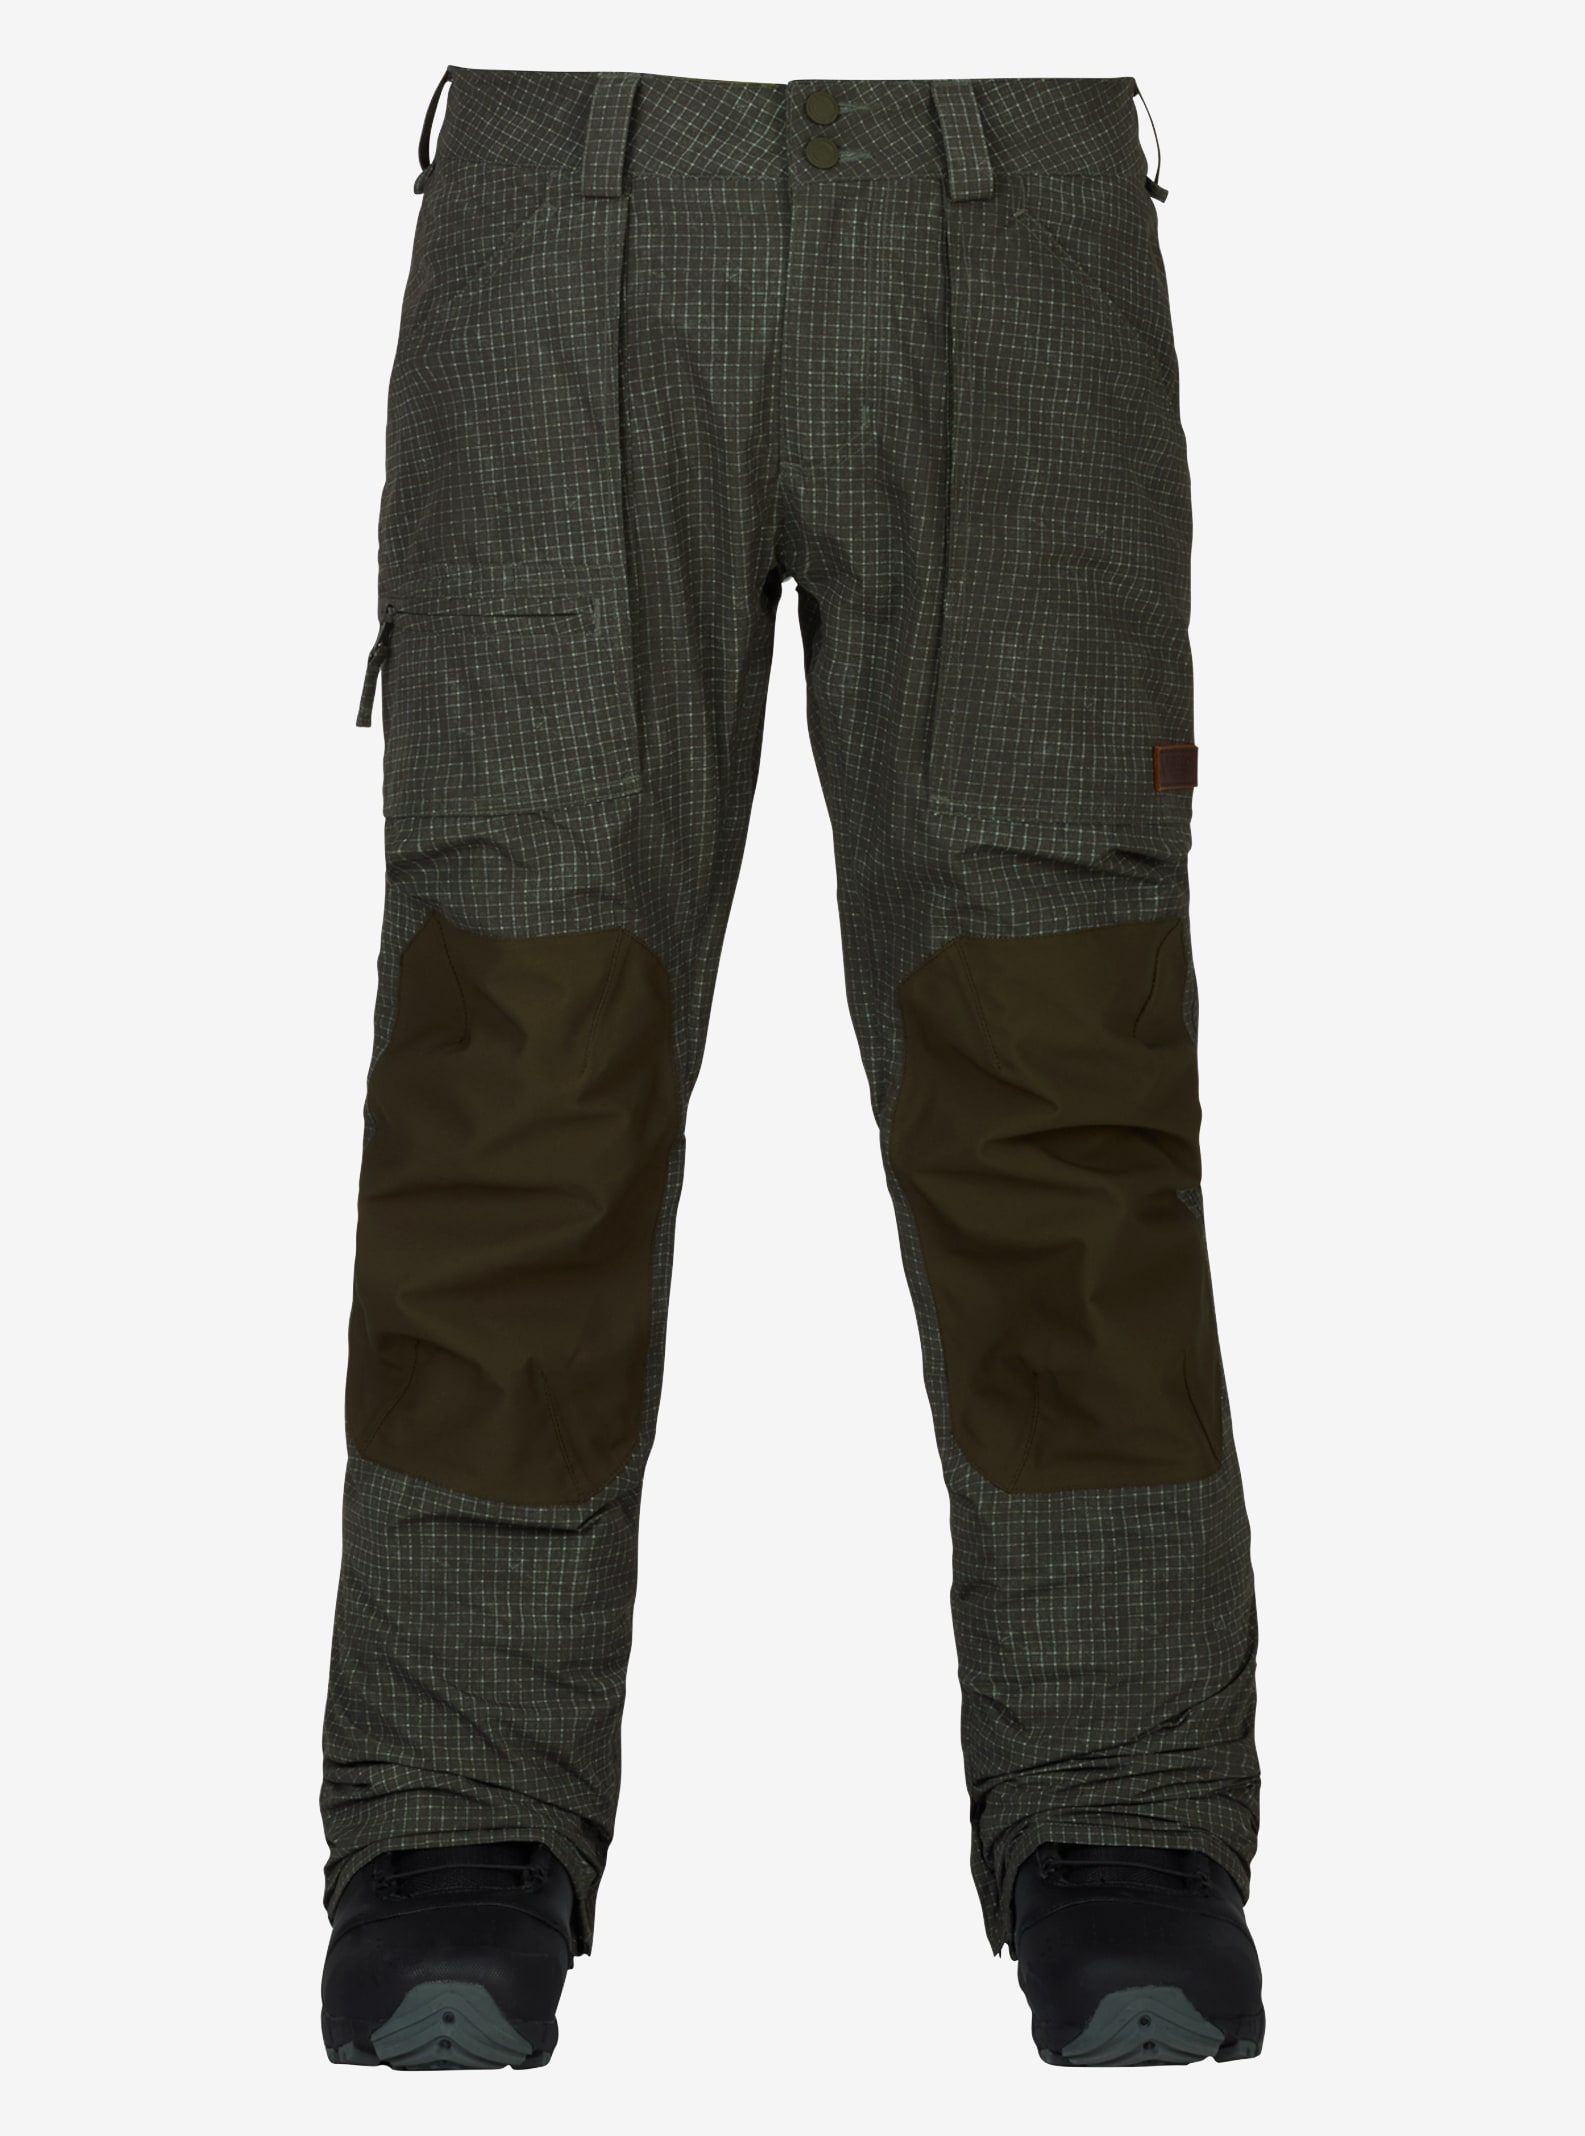 Men's Burton Southside Pant - Slim Fit shown in Forest Night Ripstop Texture / Forest Night